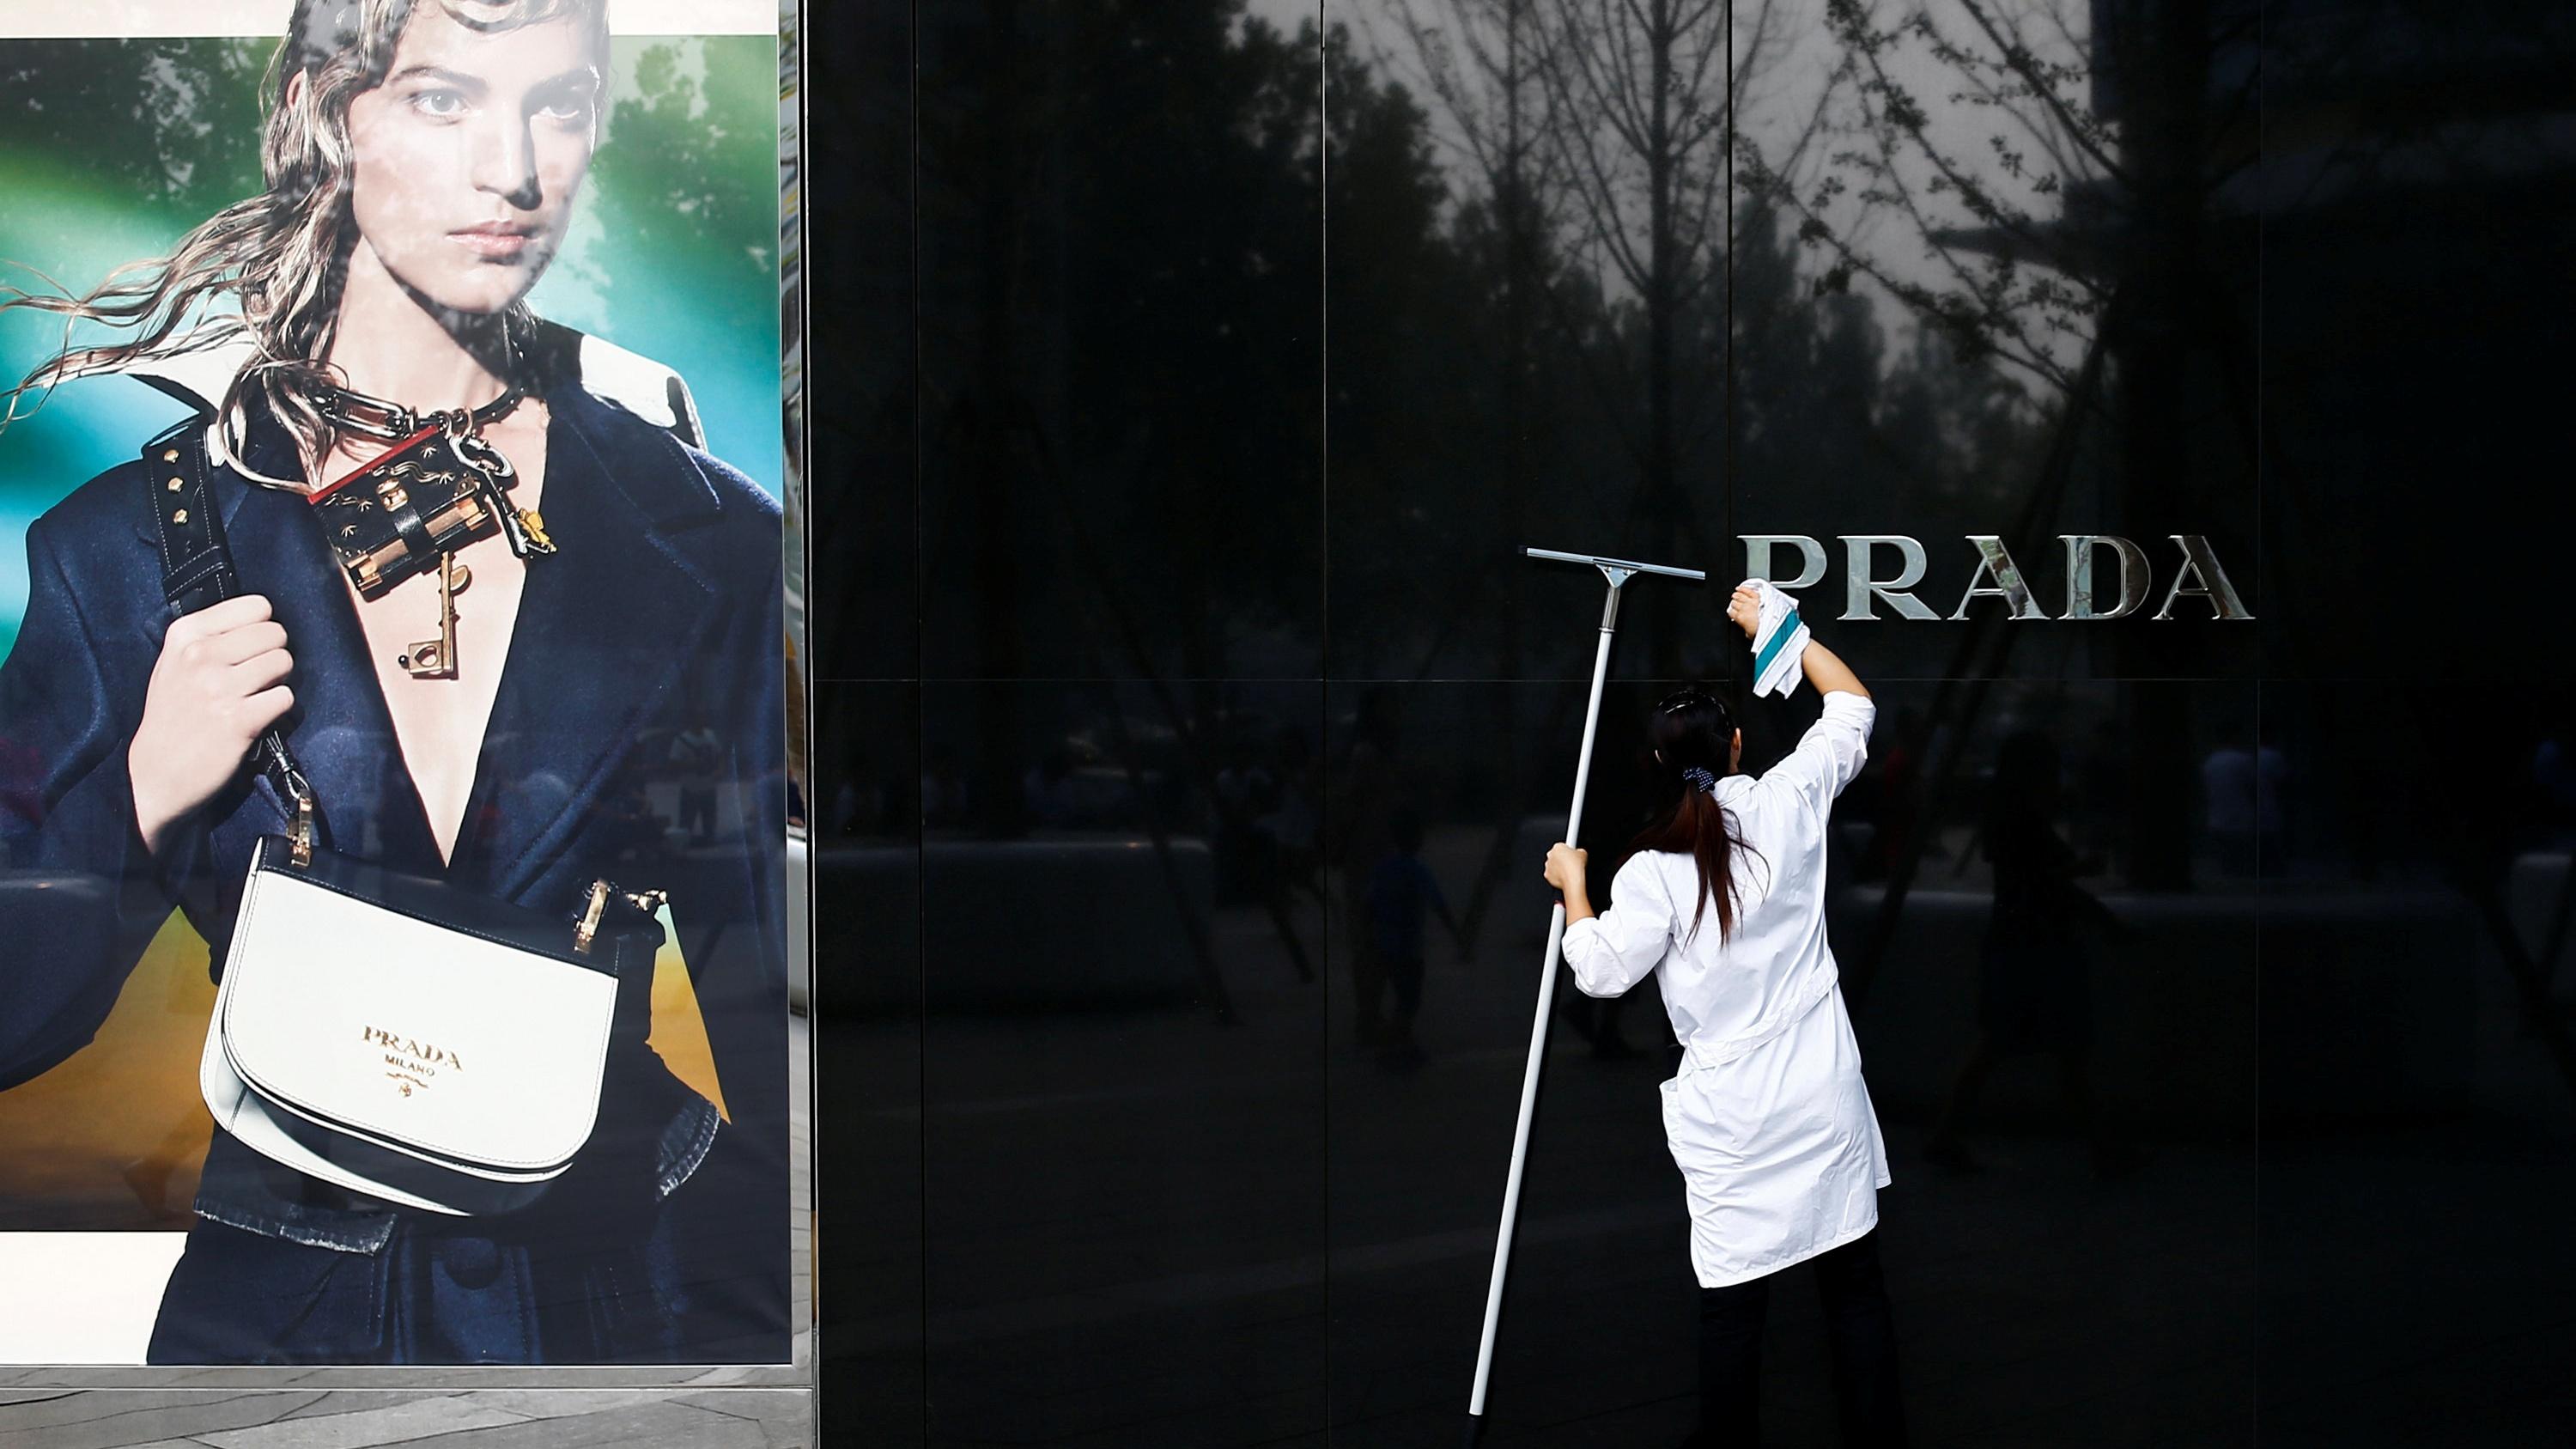 A woman cleans the brand logo at a Prada fashion boutique in Beijing, China, September 16, 2016. REUTERS/Thomas Peter